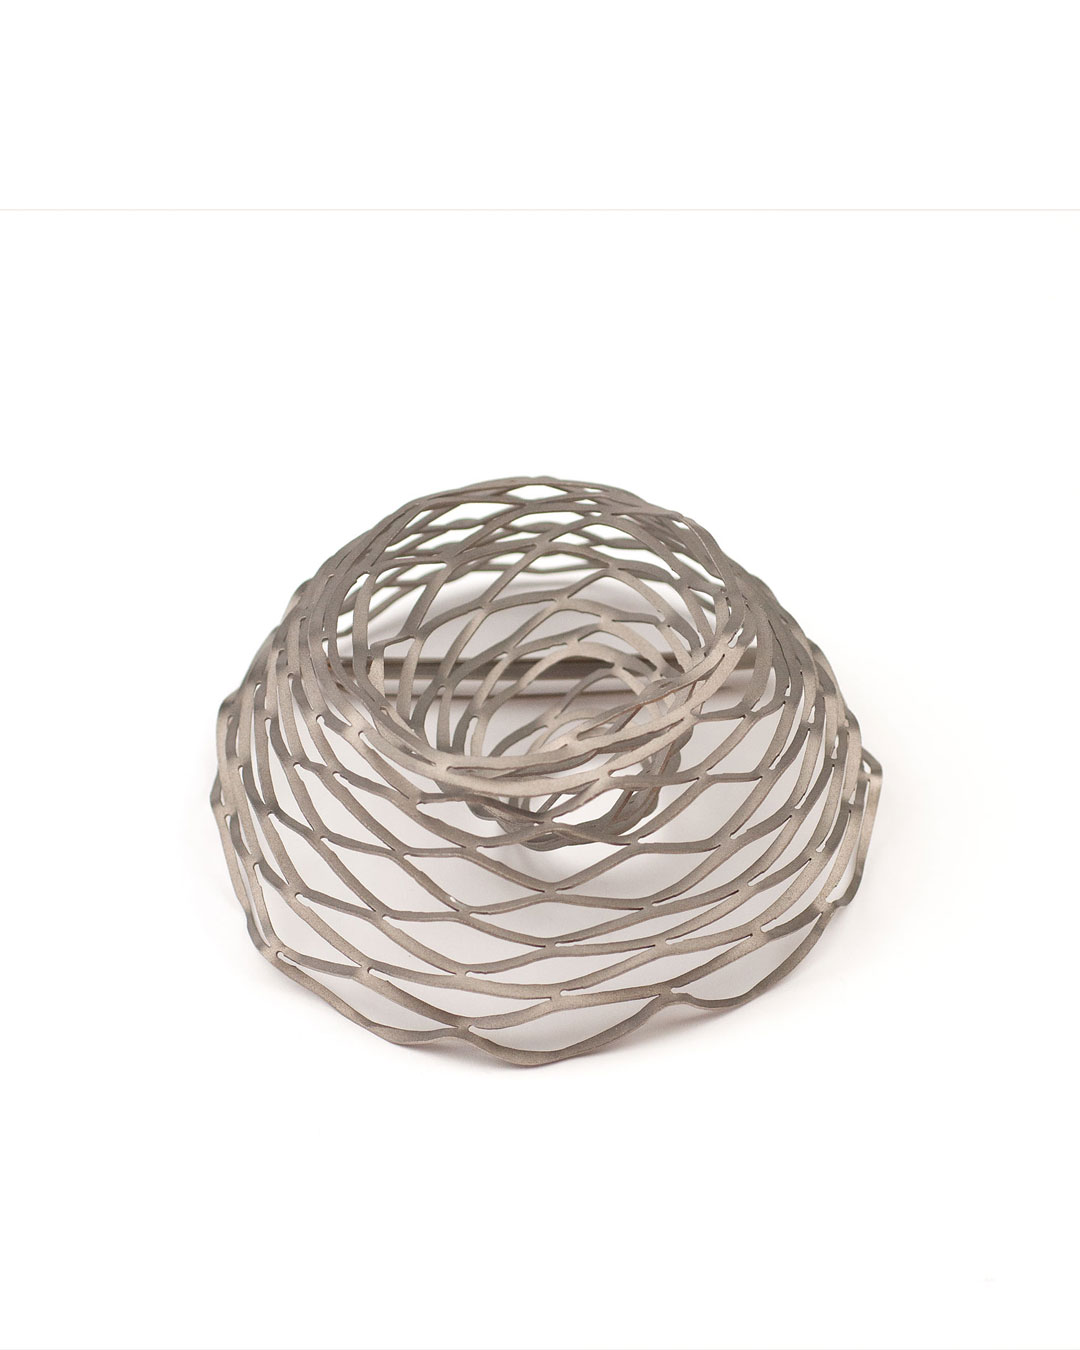 Antje Bräuer, untitled, 2010, brooch; titanium, gold, stainless steel, 116 x 109 x 52 mm, €780